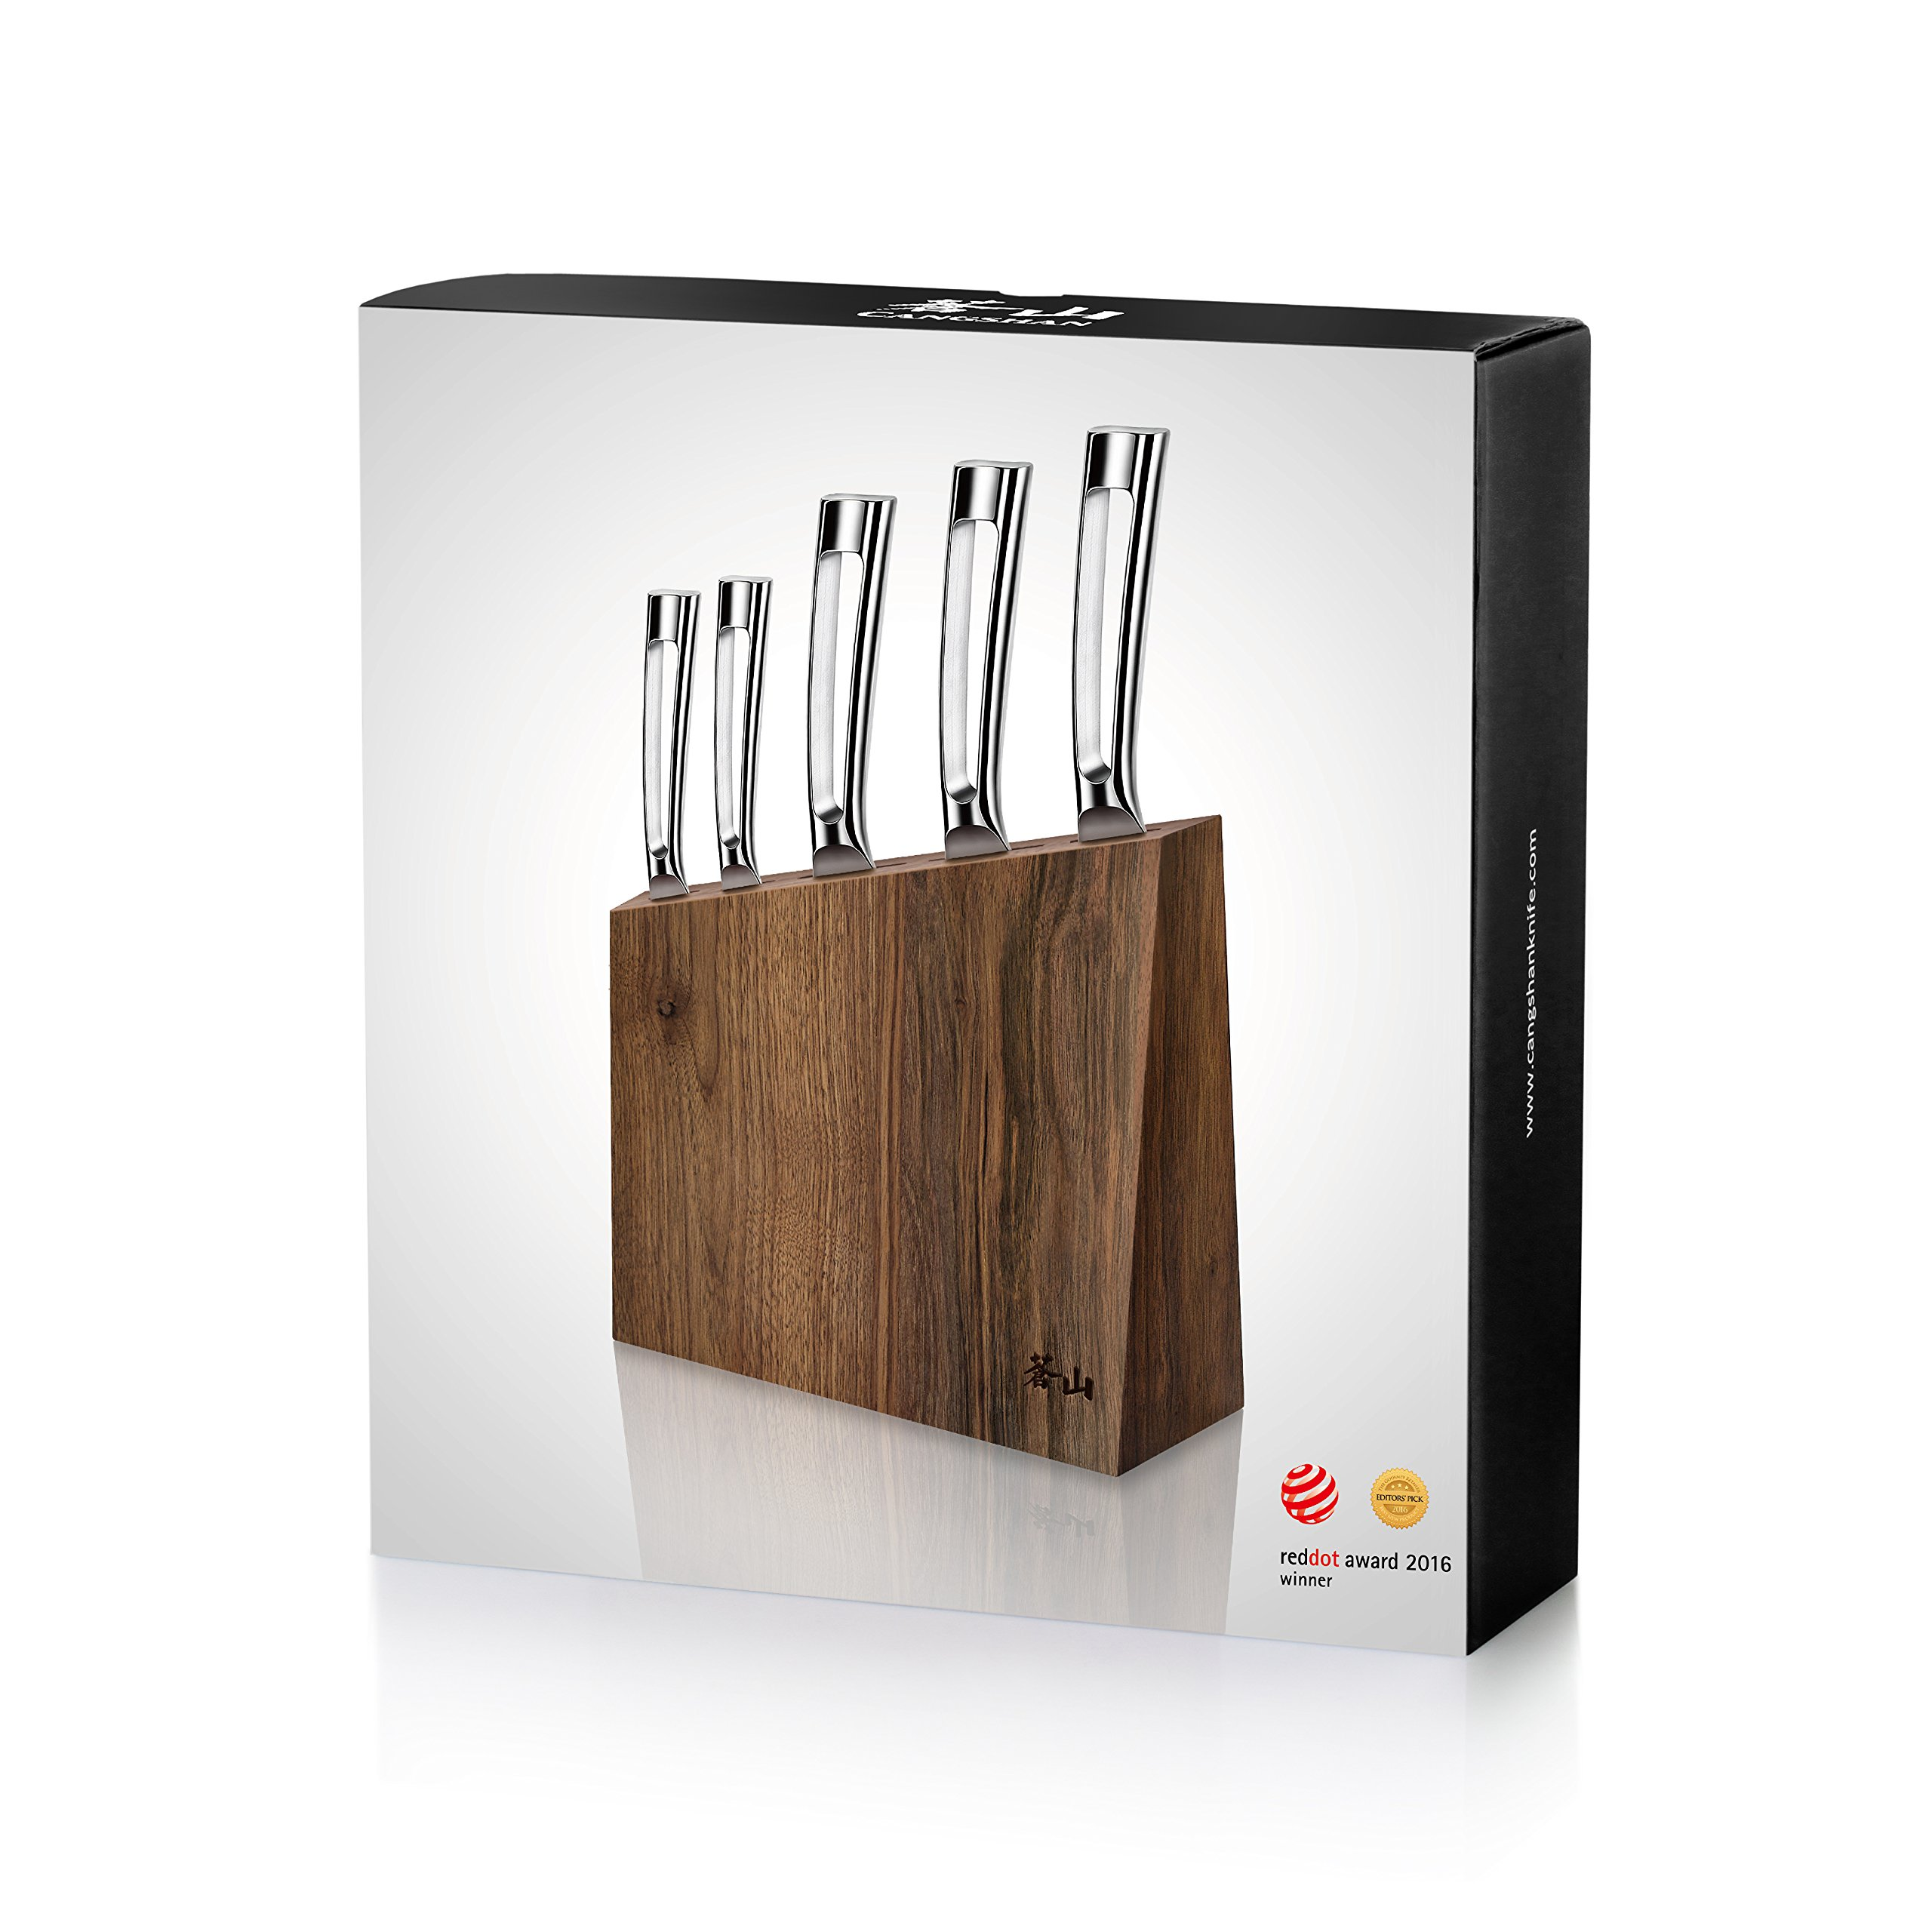 Cangshan N1 Series 61017 6-Piece German Steel Forged Knife Block Set, Walnut Block by Cangshan (Image #8)